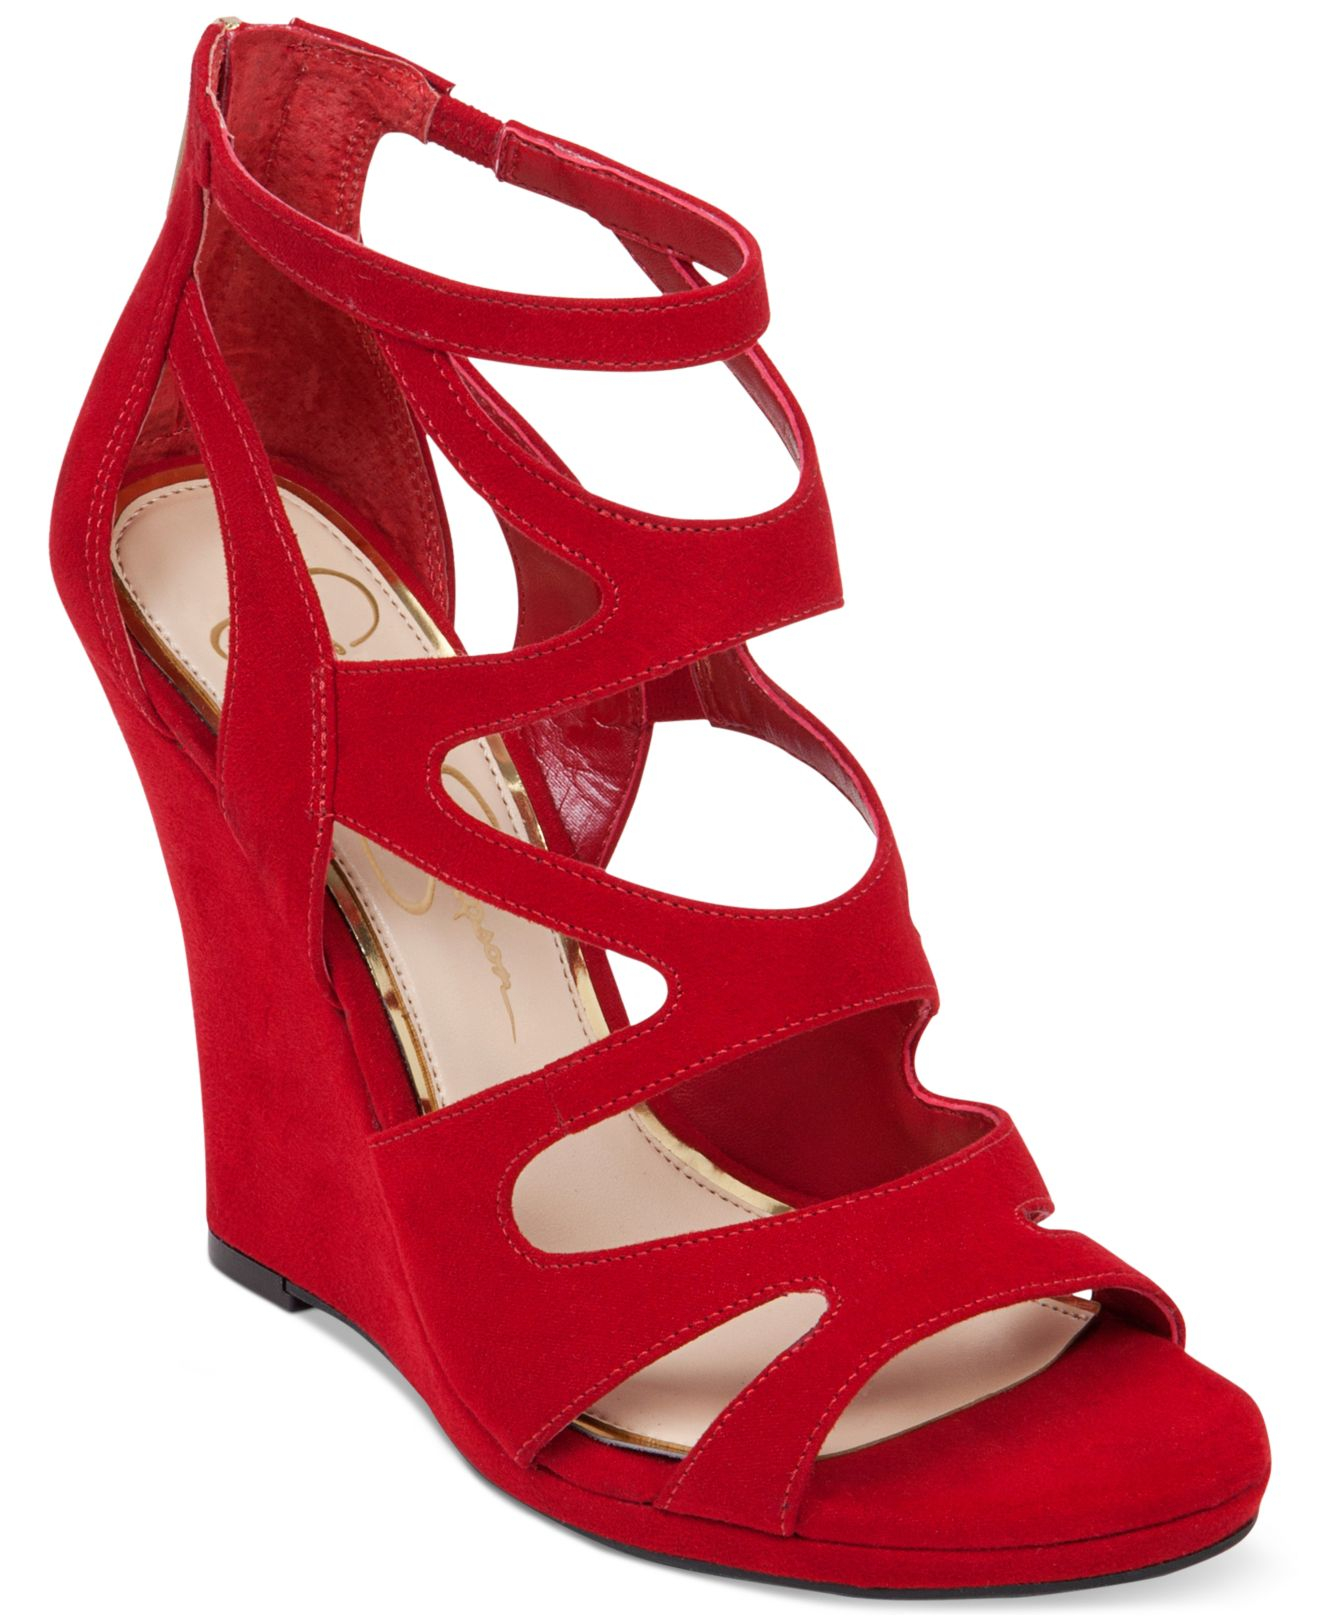 Lyst Jessica Simpson Delina Caged Wedge Sandals In Red